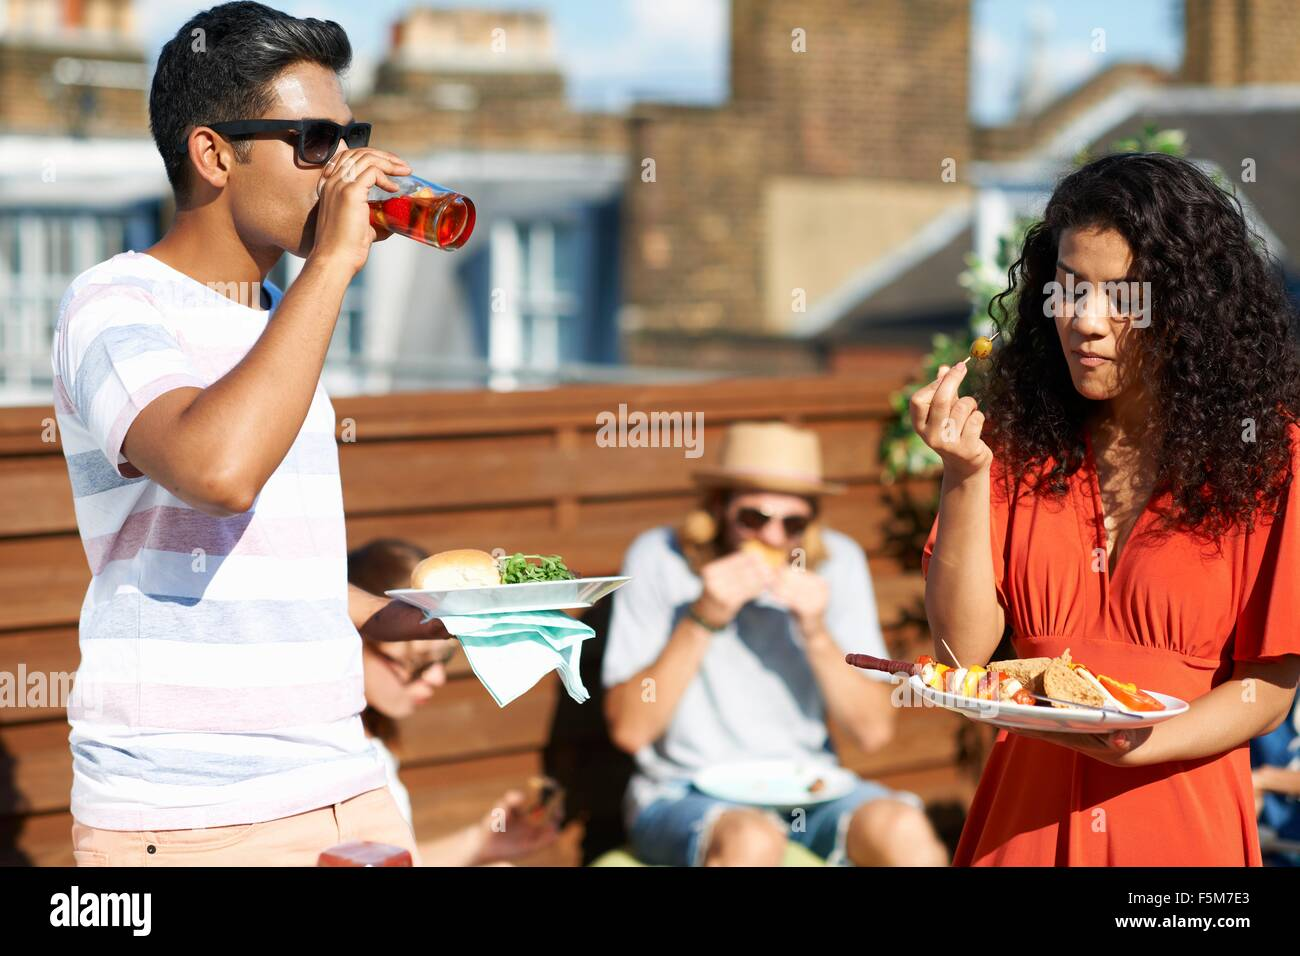 Friends eating party food and drinking at rooftop party - Stock Image